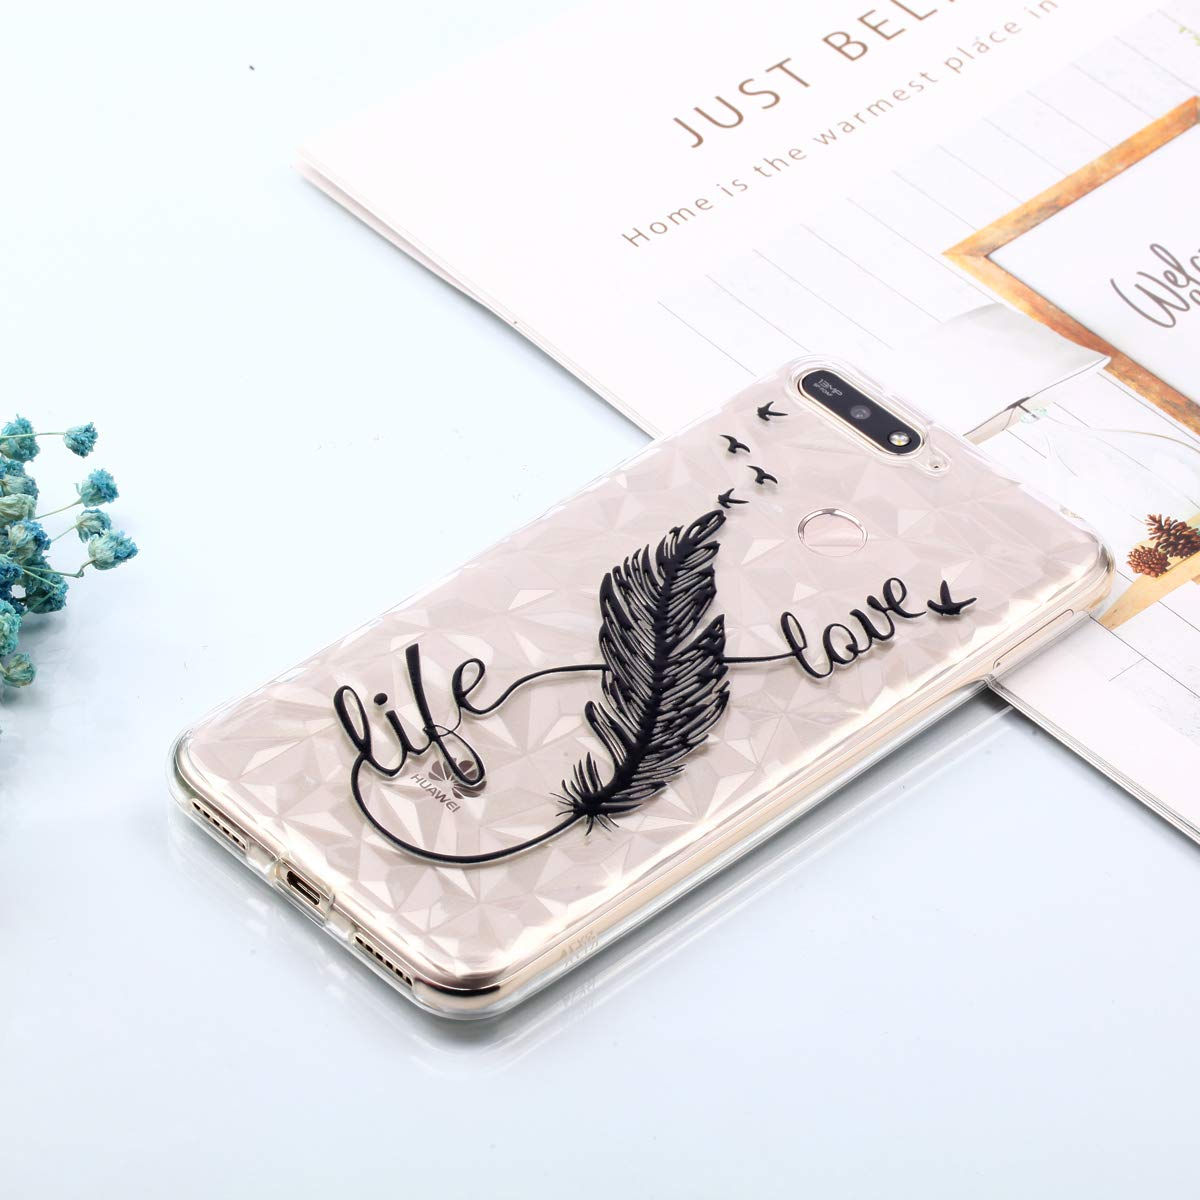 Huawei Y6 2018 Soft TPU Silicone Case,WIWJ Embossed Varnish Painted Diamond Pattern Shockproof Phone Case Slim Thin Fit for Huawei Y6 2018-Pineapple